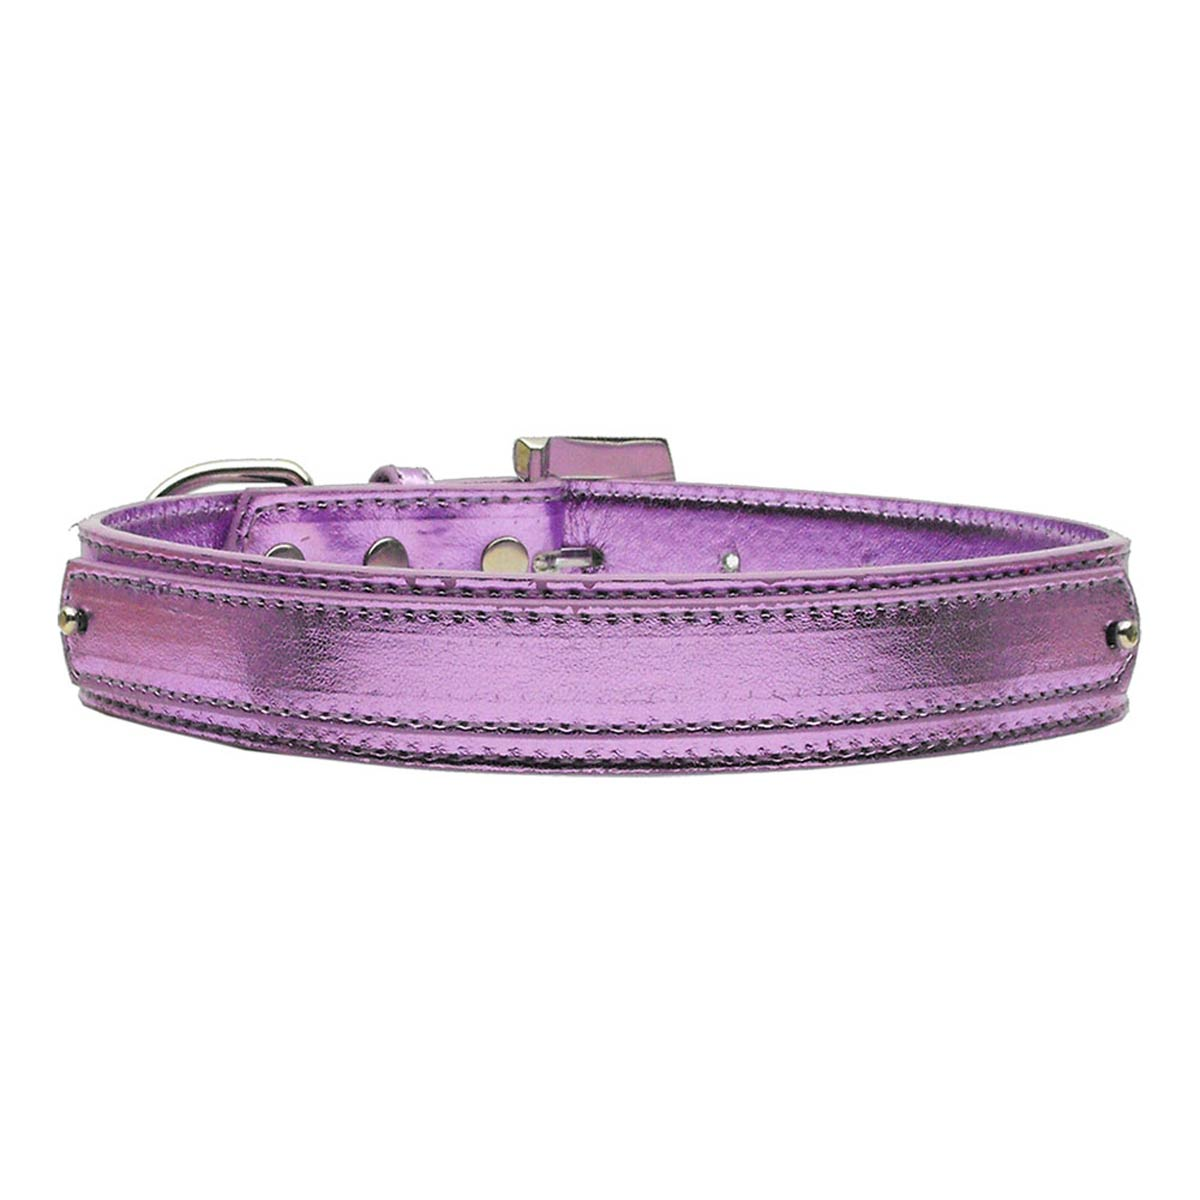 Metallic Two Tiered Dog Collar with 18MM Letter Strap - Purple